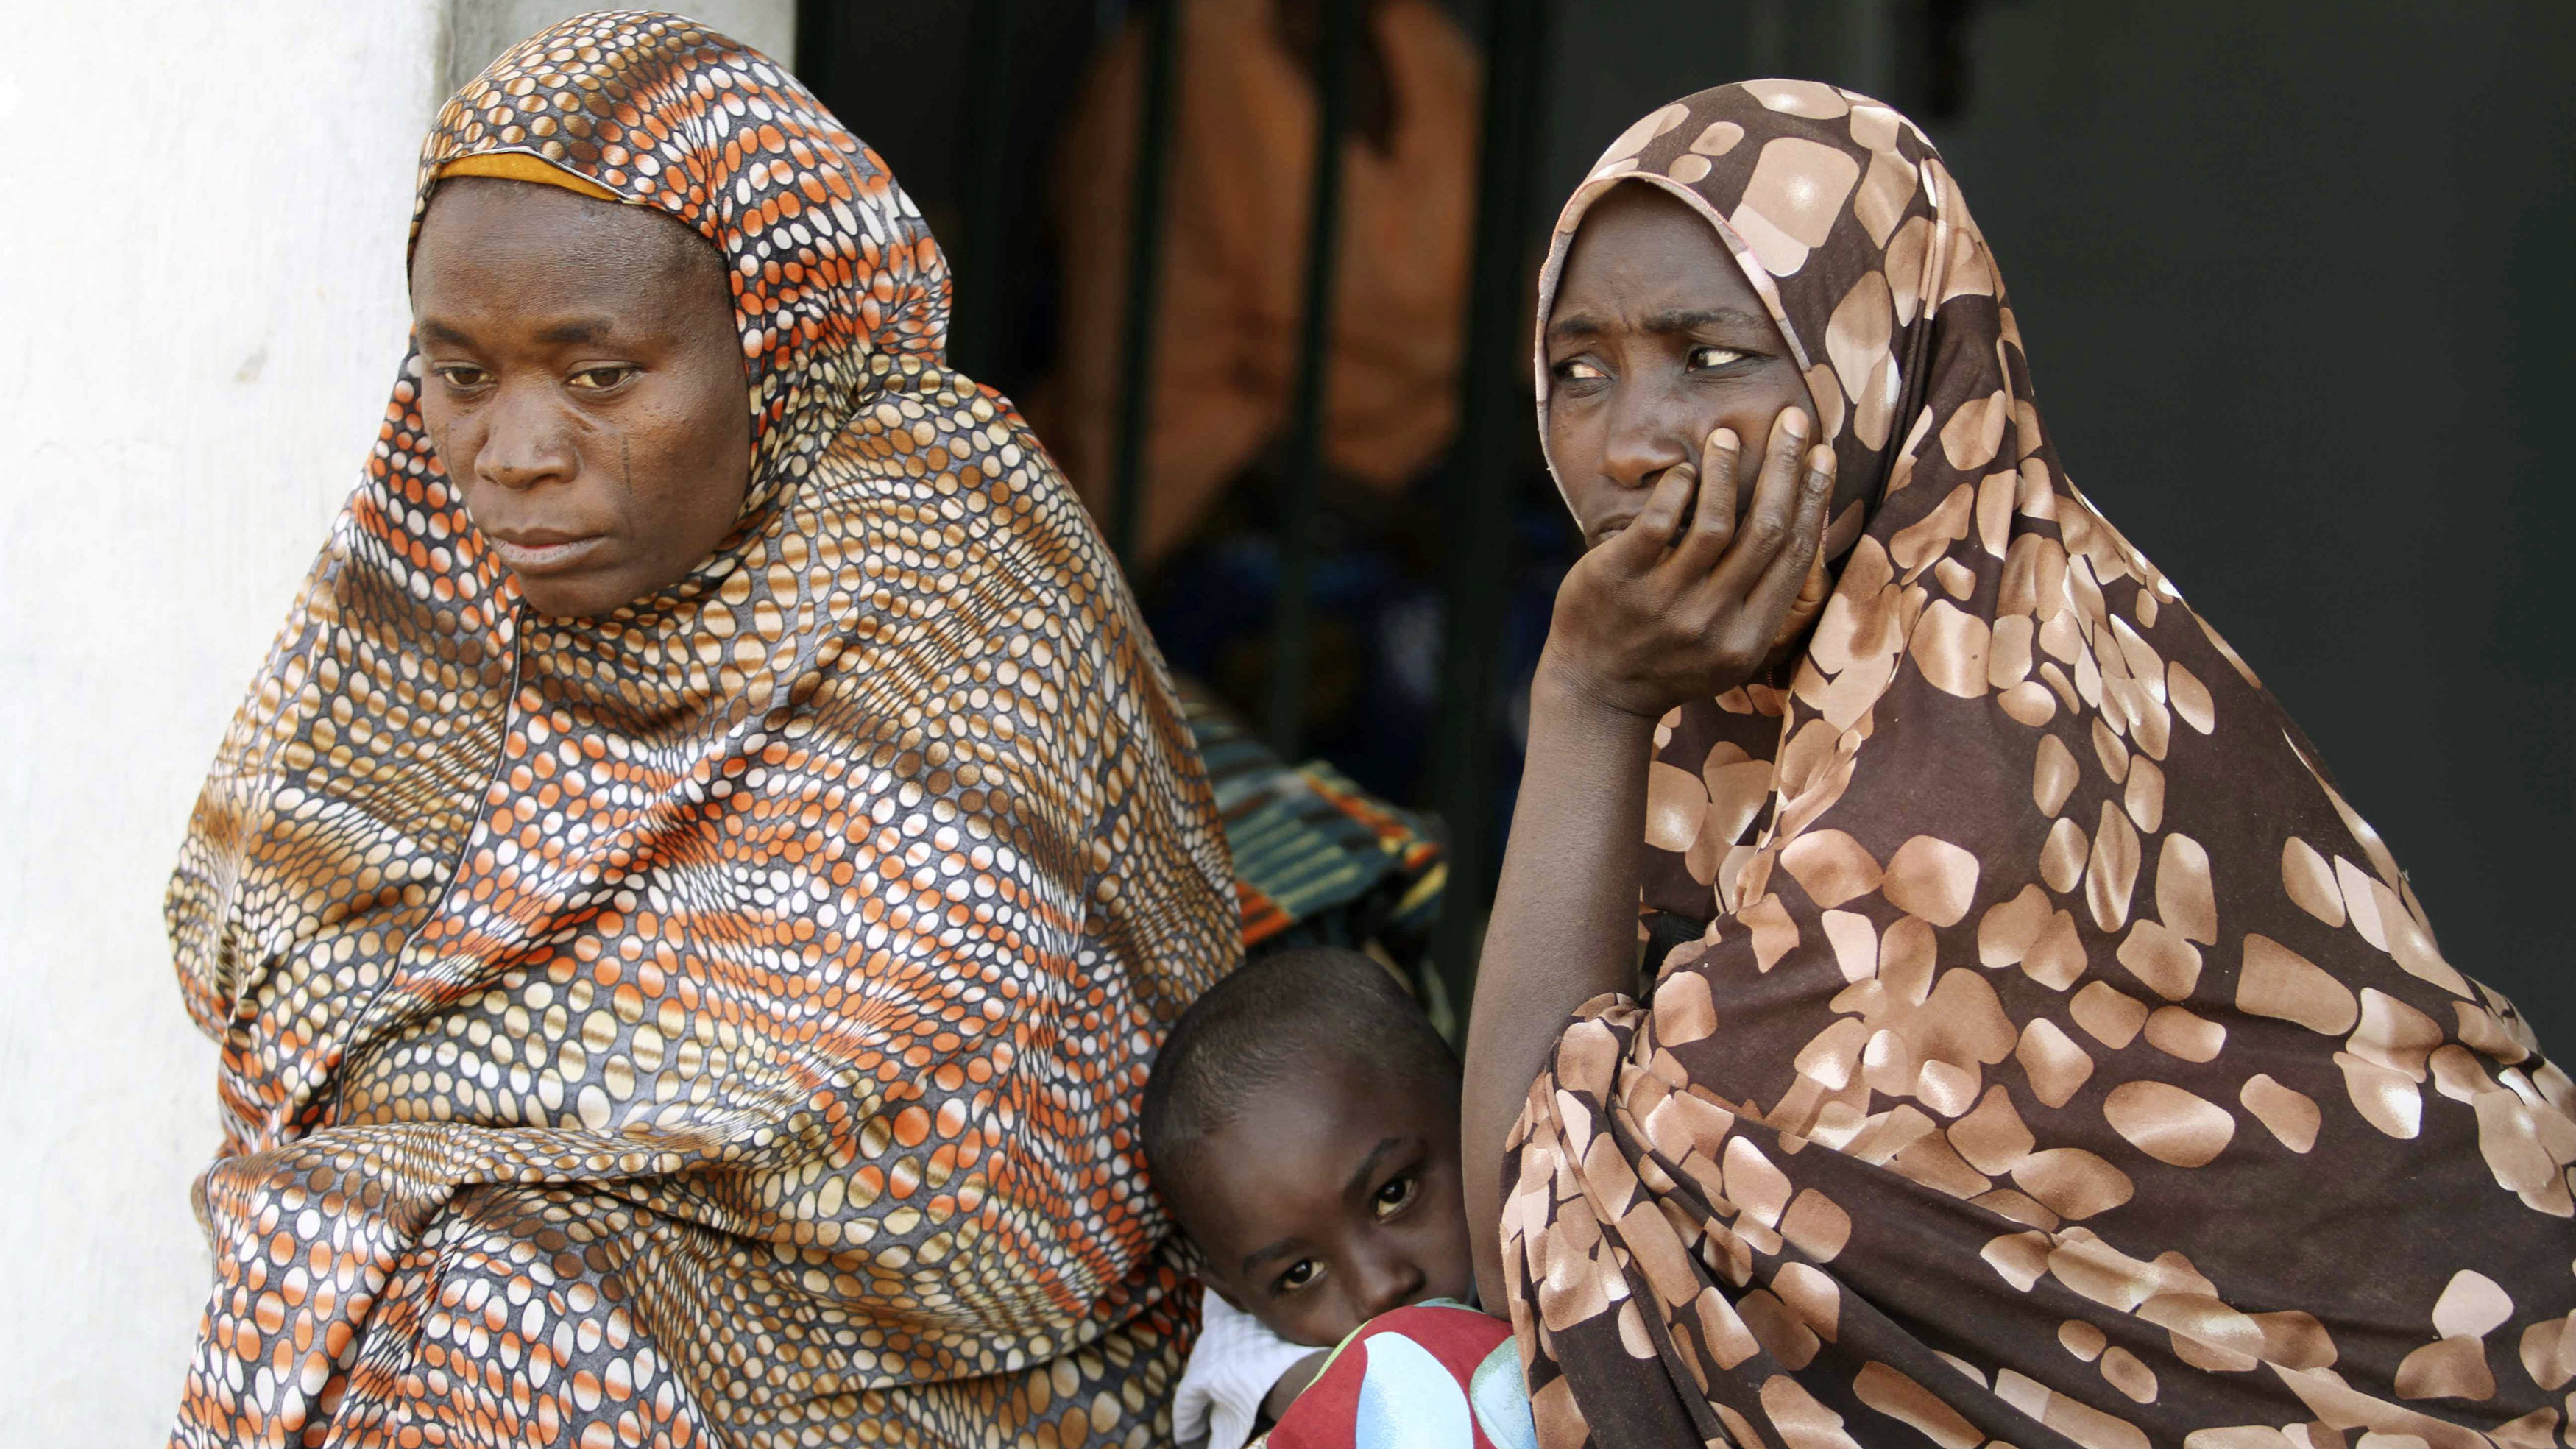 Women sit with their children at a camp for internally displaced people in Nigeria's central city of Jos December 26, 2010. Clashes broke out between armed Christian and Muslim groups near the central Nigerian city of Jos on Sunday, a Reuters witness said, after Christmas Eve bombings in the region killed more than 30 people.